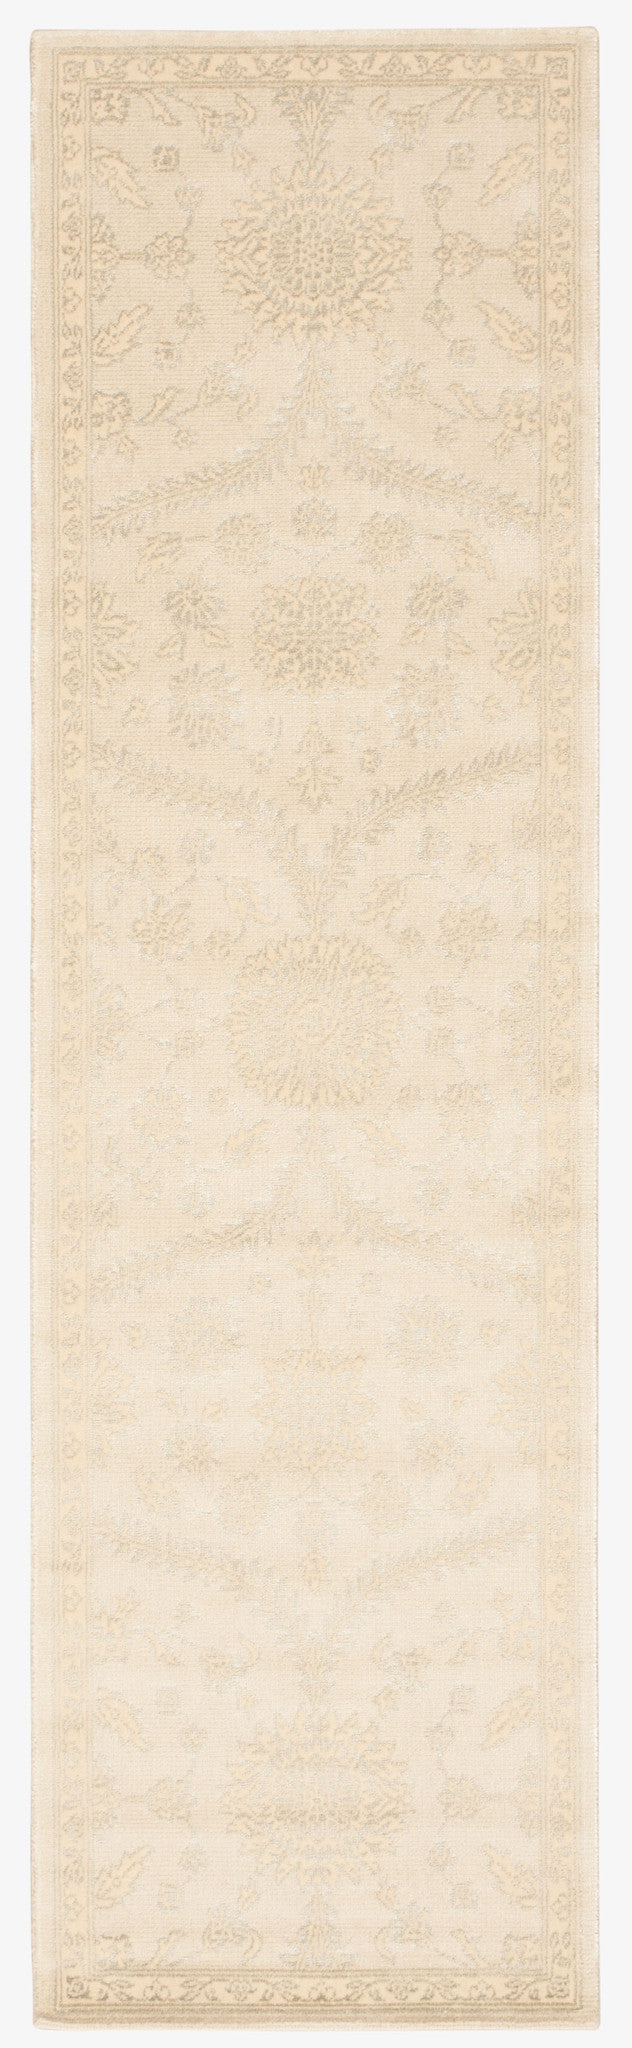 Nourison Luminance Cream Mint Area Rug LUM04 CRMNT